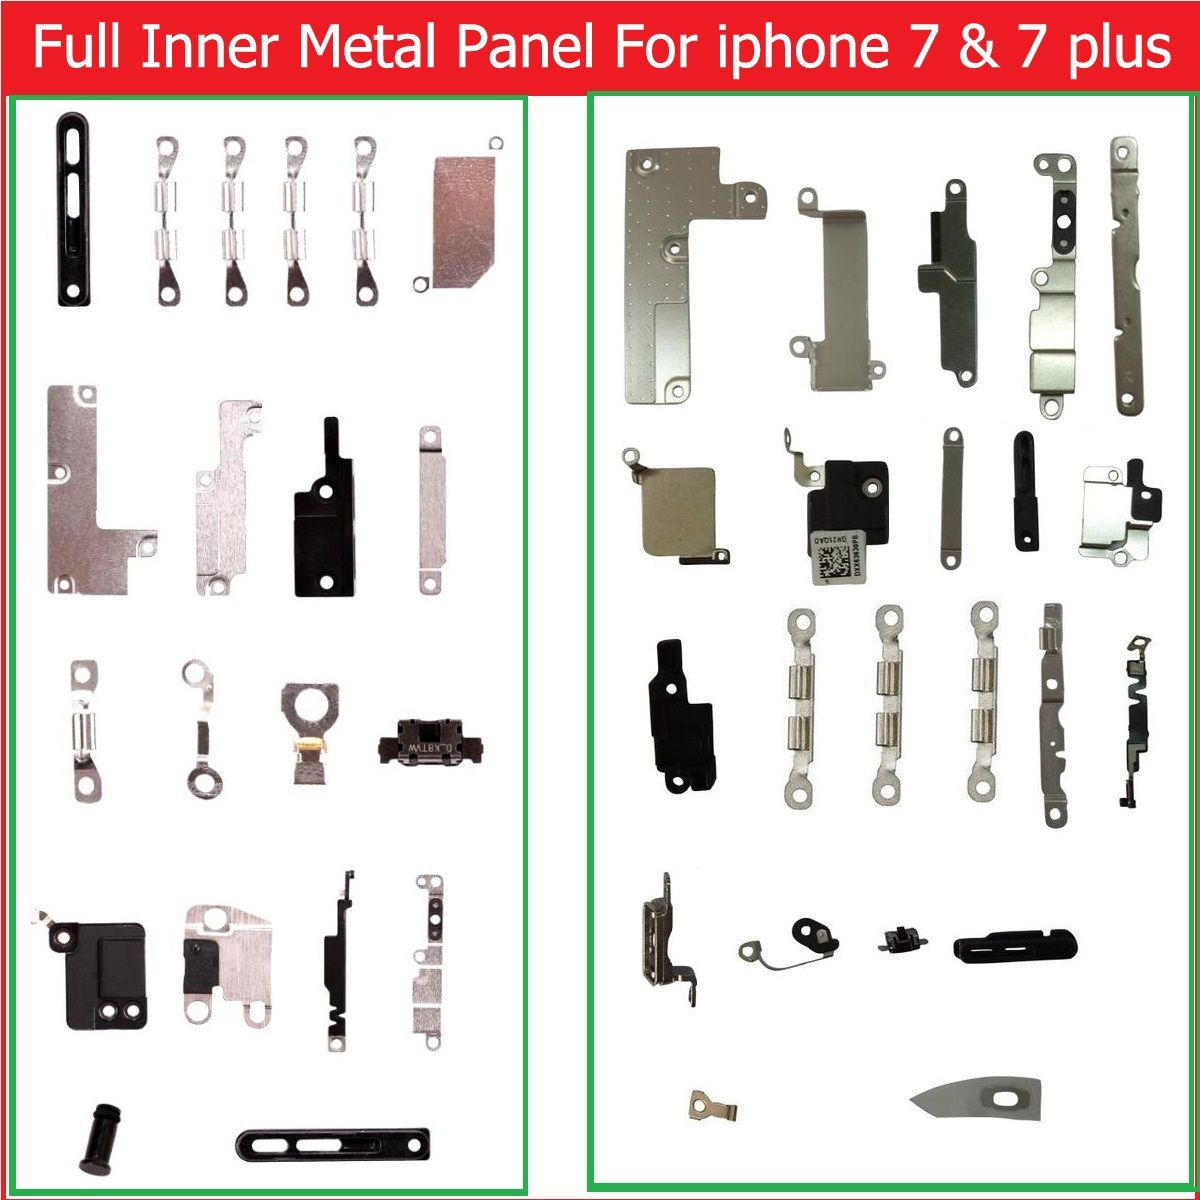 Full body inner Small Metal iron parts For iPhone 7 & 7 plus Small holder bracket shield plate set kit phone replacement parts